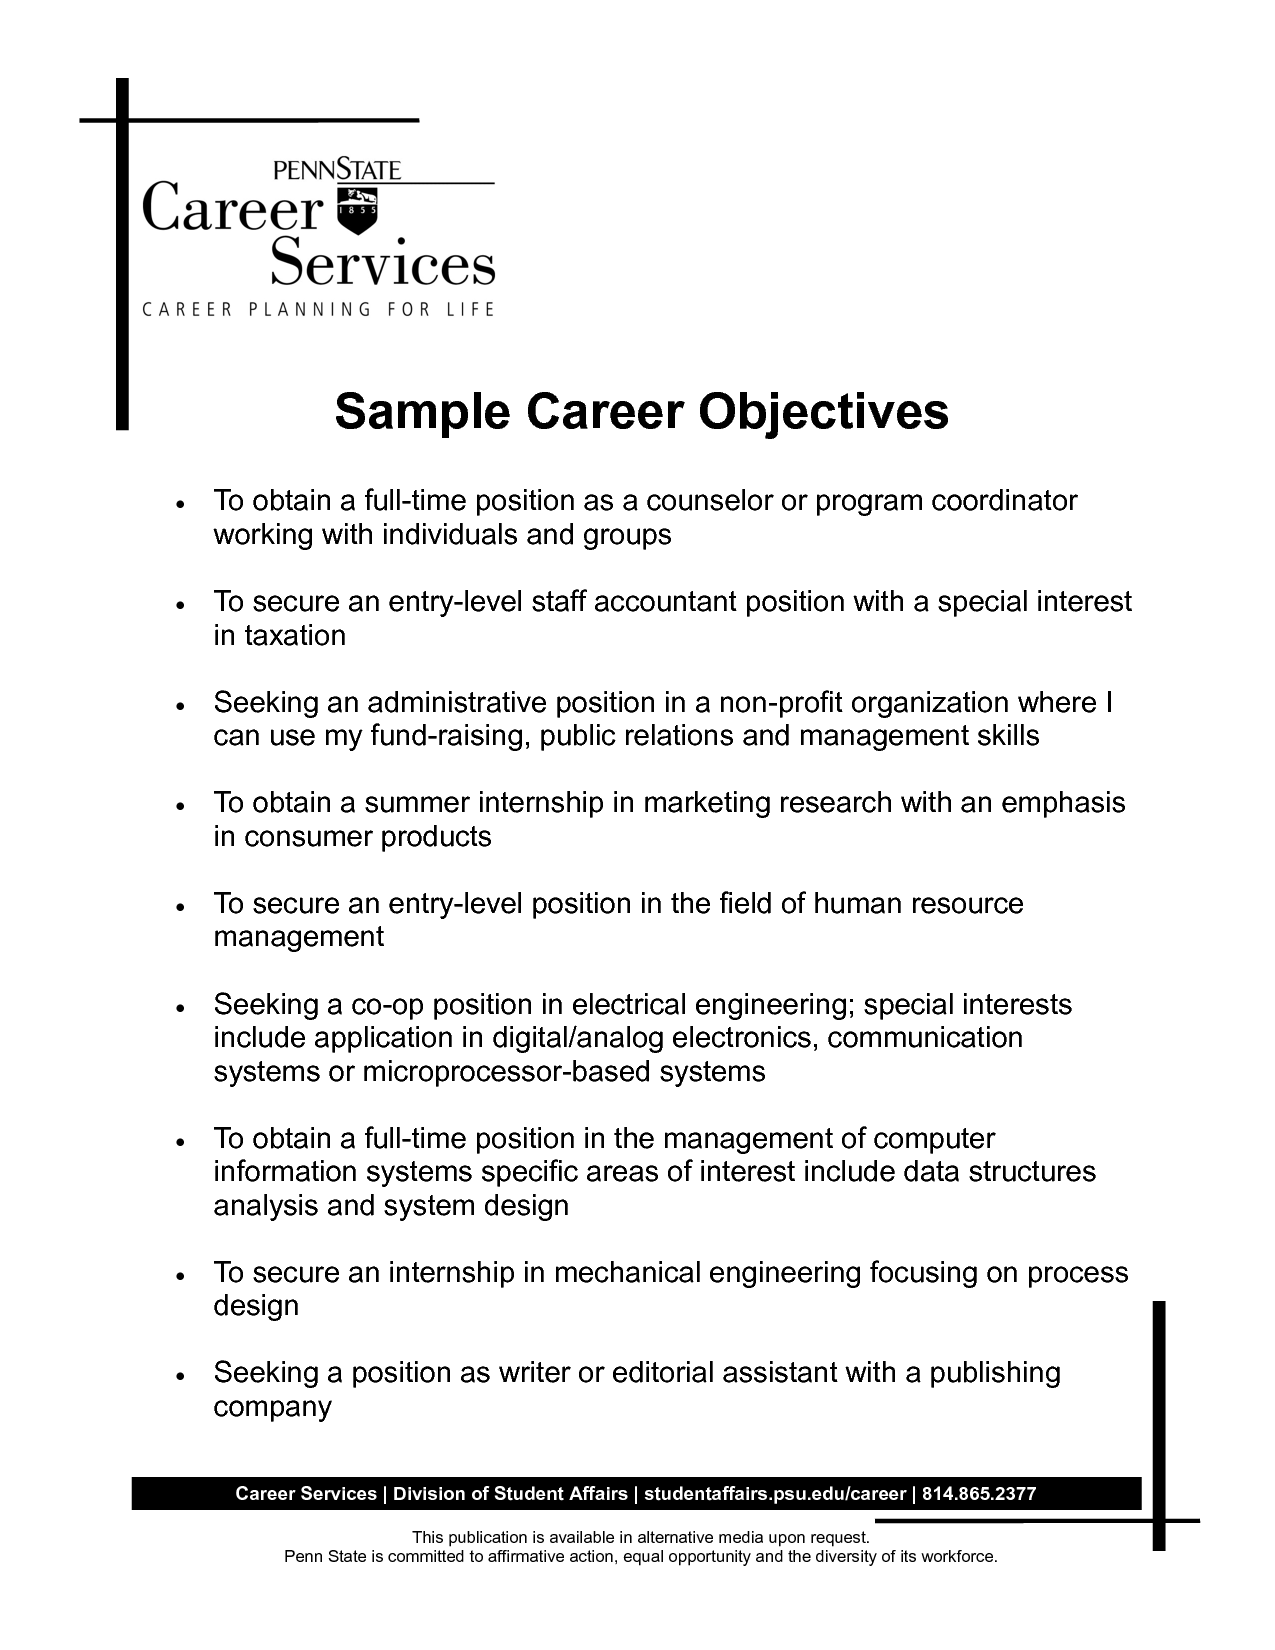 Example Of An Objective On A Resume Career Objective Resume Accountant  Httpwwwresumecareer